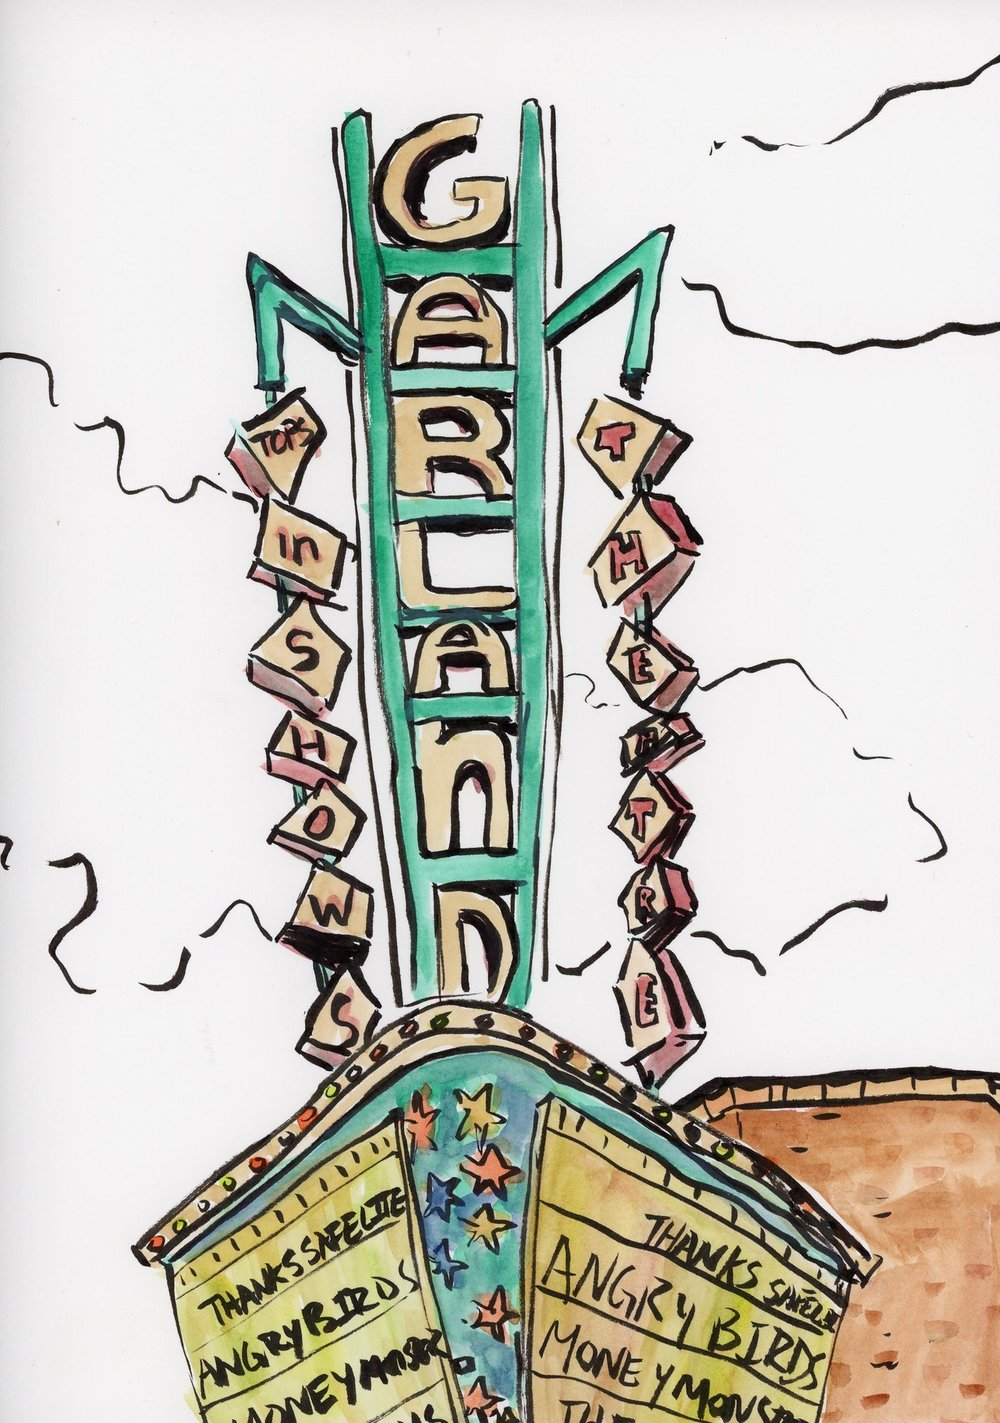 sketch_GarlandTheater_2016_smaller.jpg